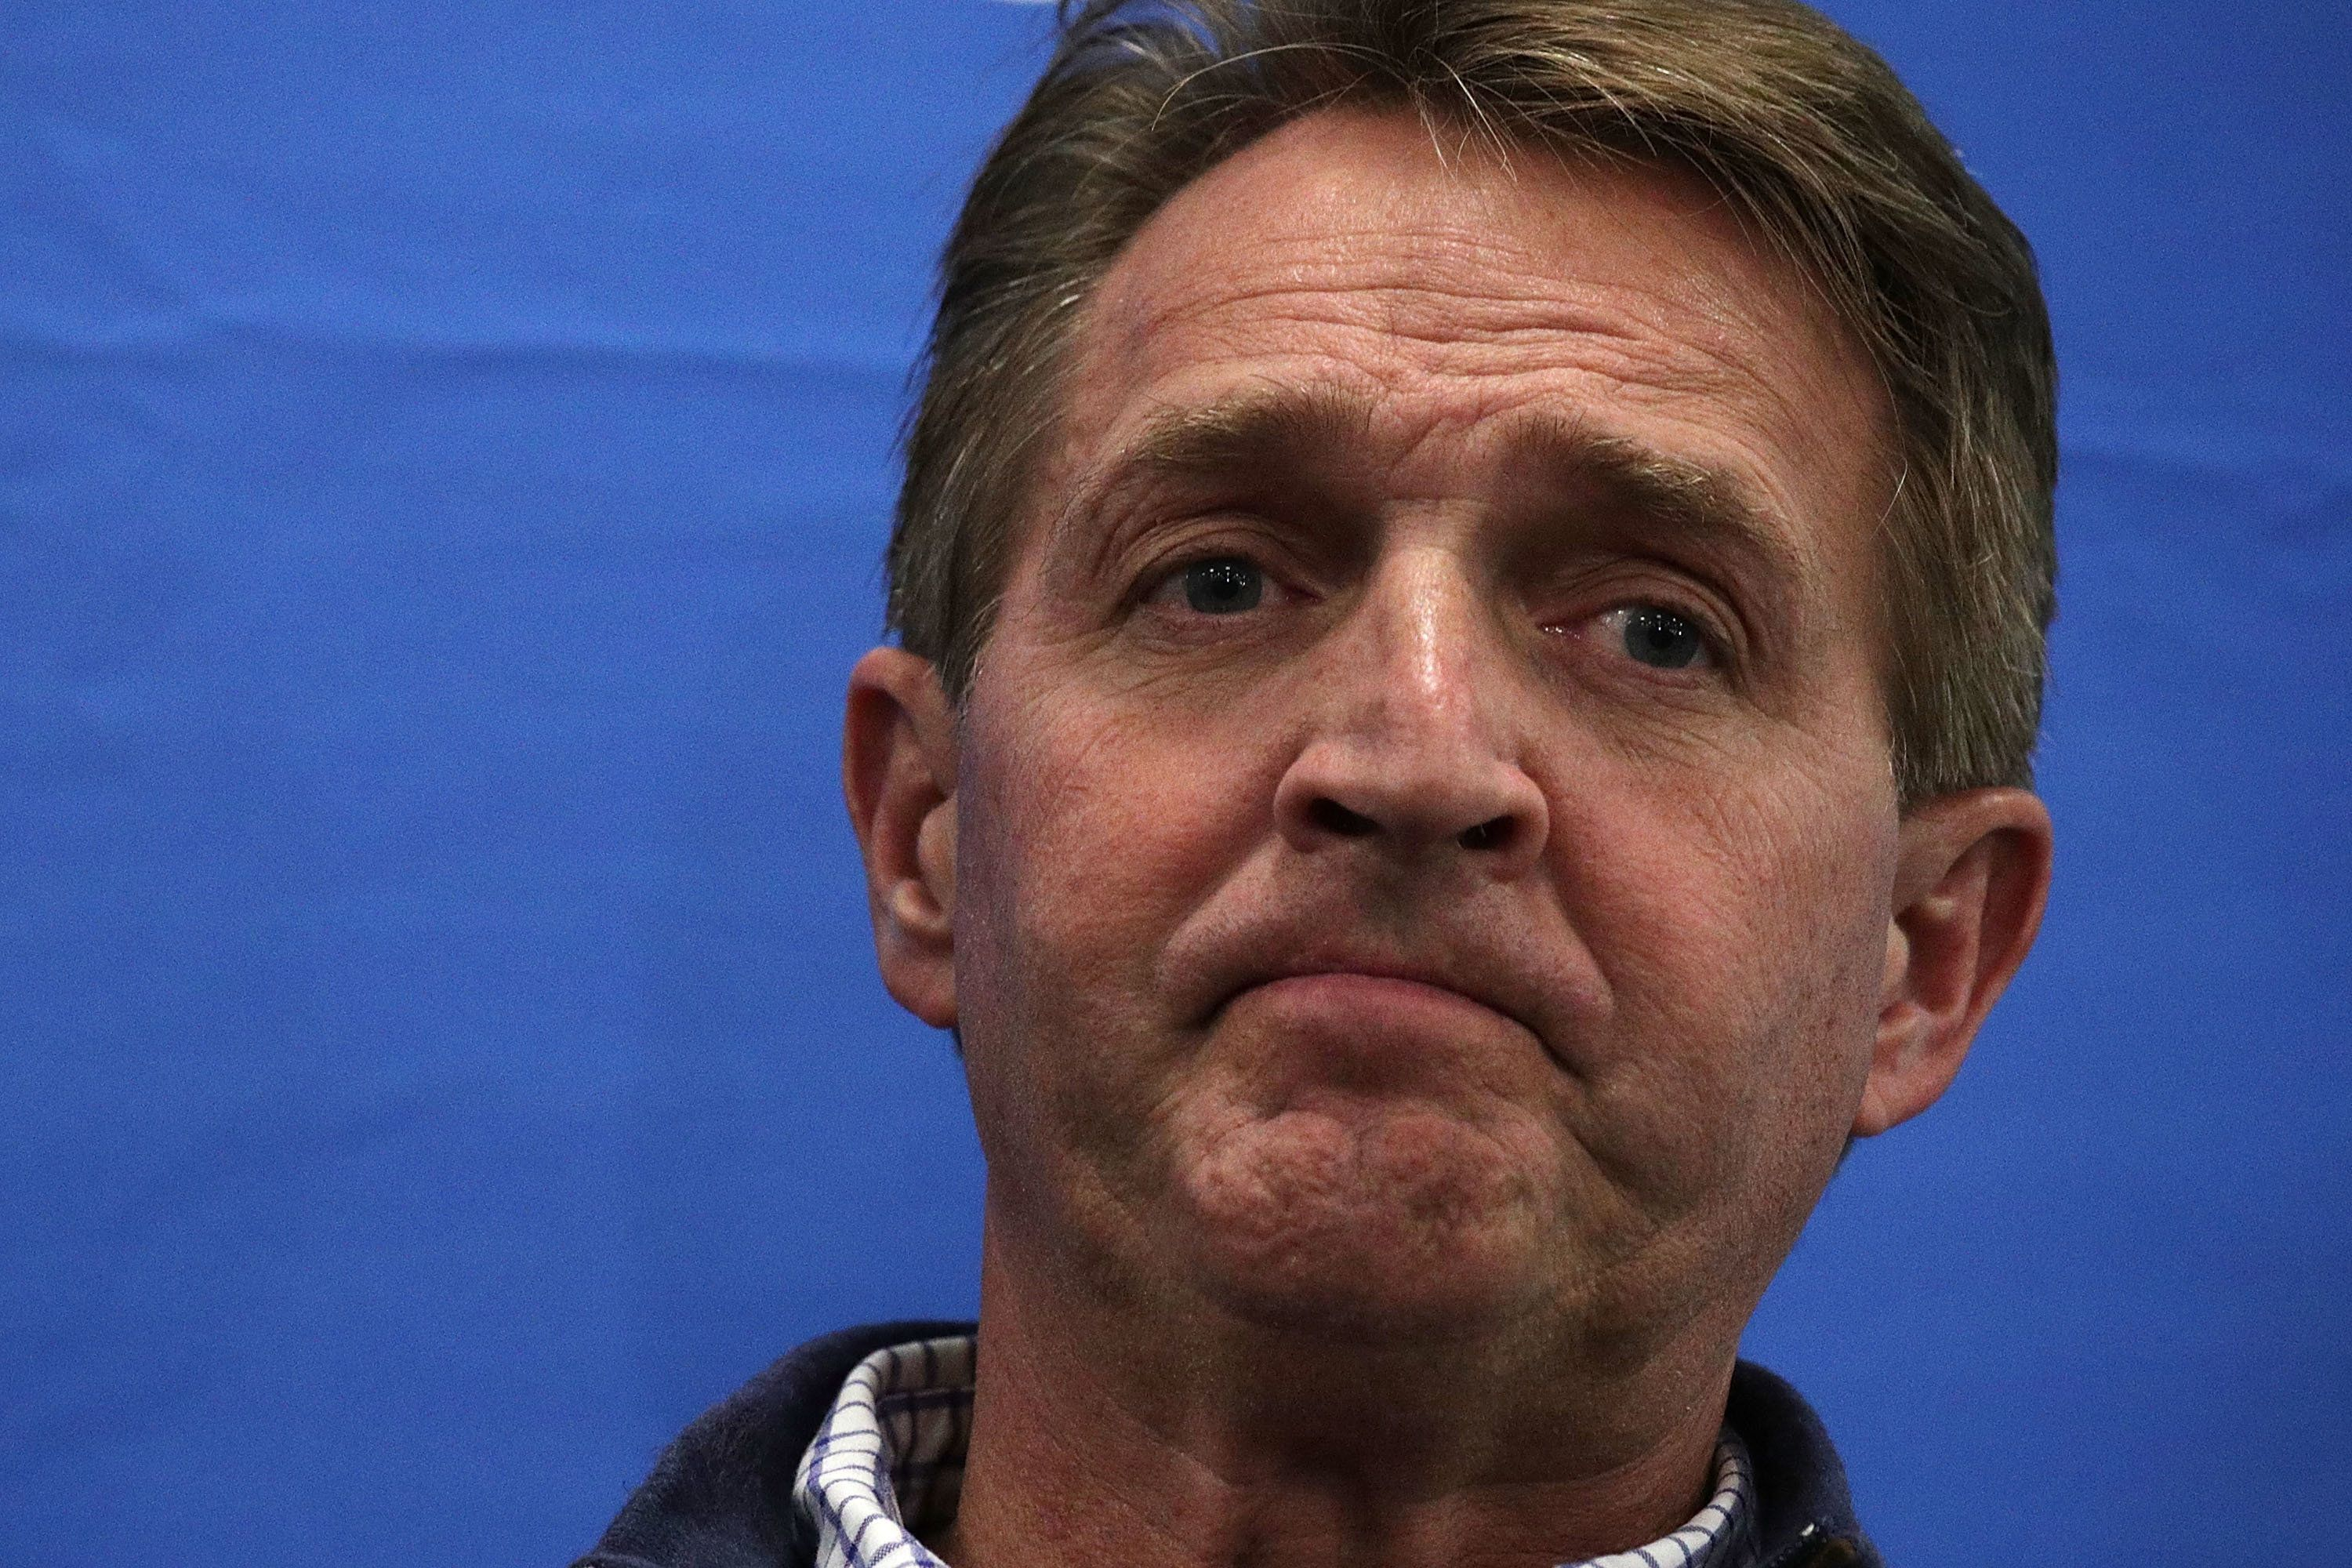 WHITE SULPHUR SPRINGS, WV - JANUARY 31:  U.S. Sen. Jeff Flake (R-AZ) attends a news briefing with other GOP lawmakers to discuss the train accident while they were on their way to the 2018 House & Senate Republican Member Conference January 31, 2018 in White Sulphur Springs, West Virginia. An Amtrak charted train that was bringing Republican lawmakers to their annual retreat crashed into a garbage truck near Crozet, Virginia, this morning killing one person on the truck.  (Photo by Alex Wong/Getty Images)